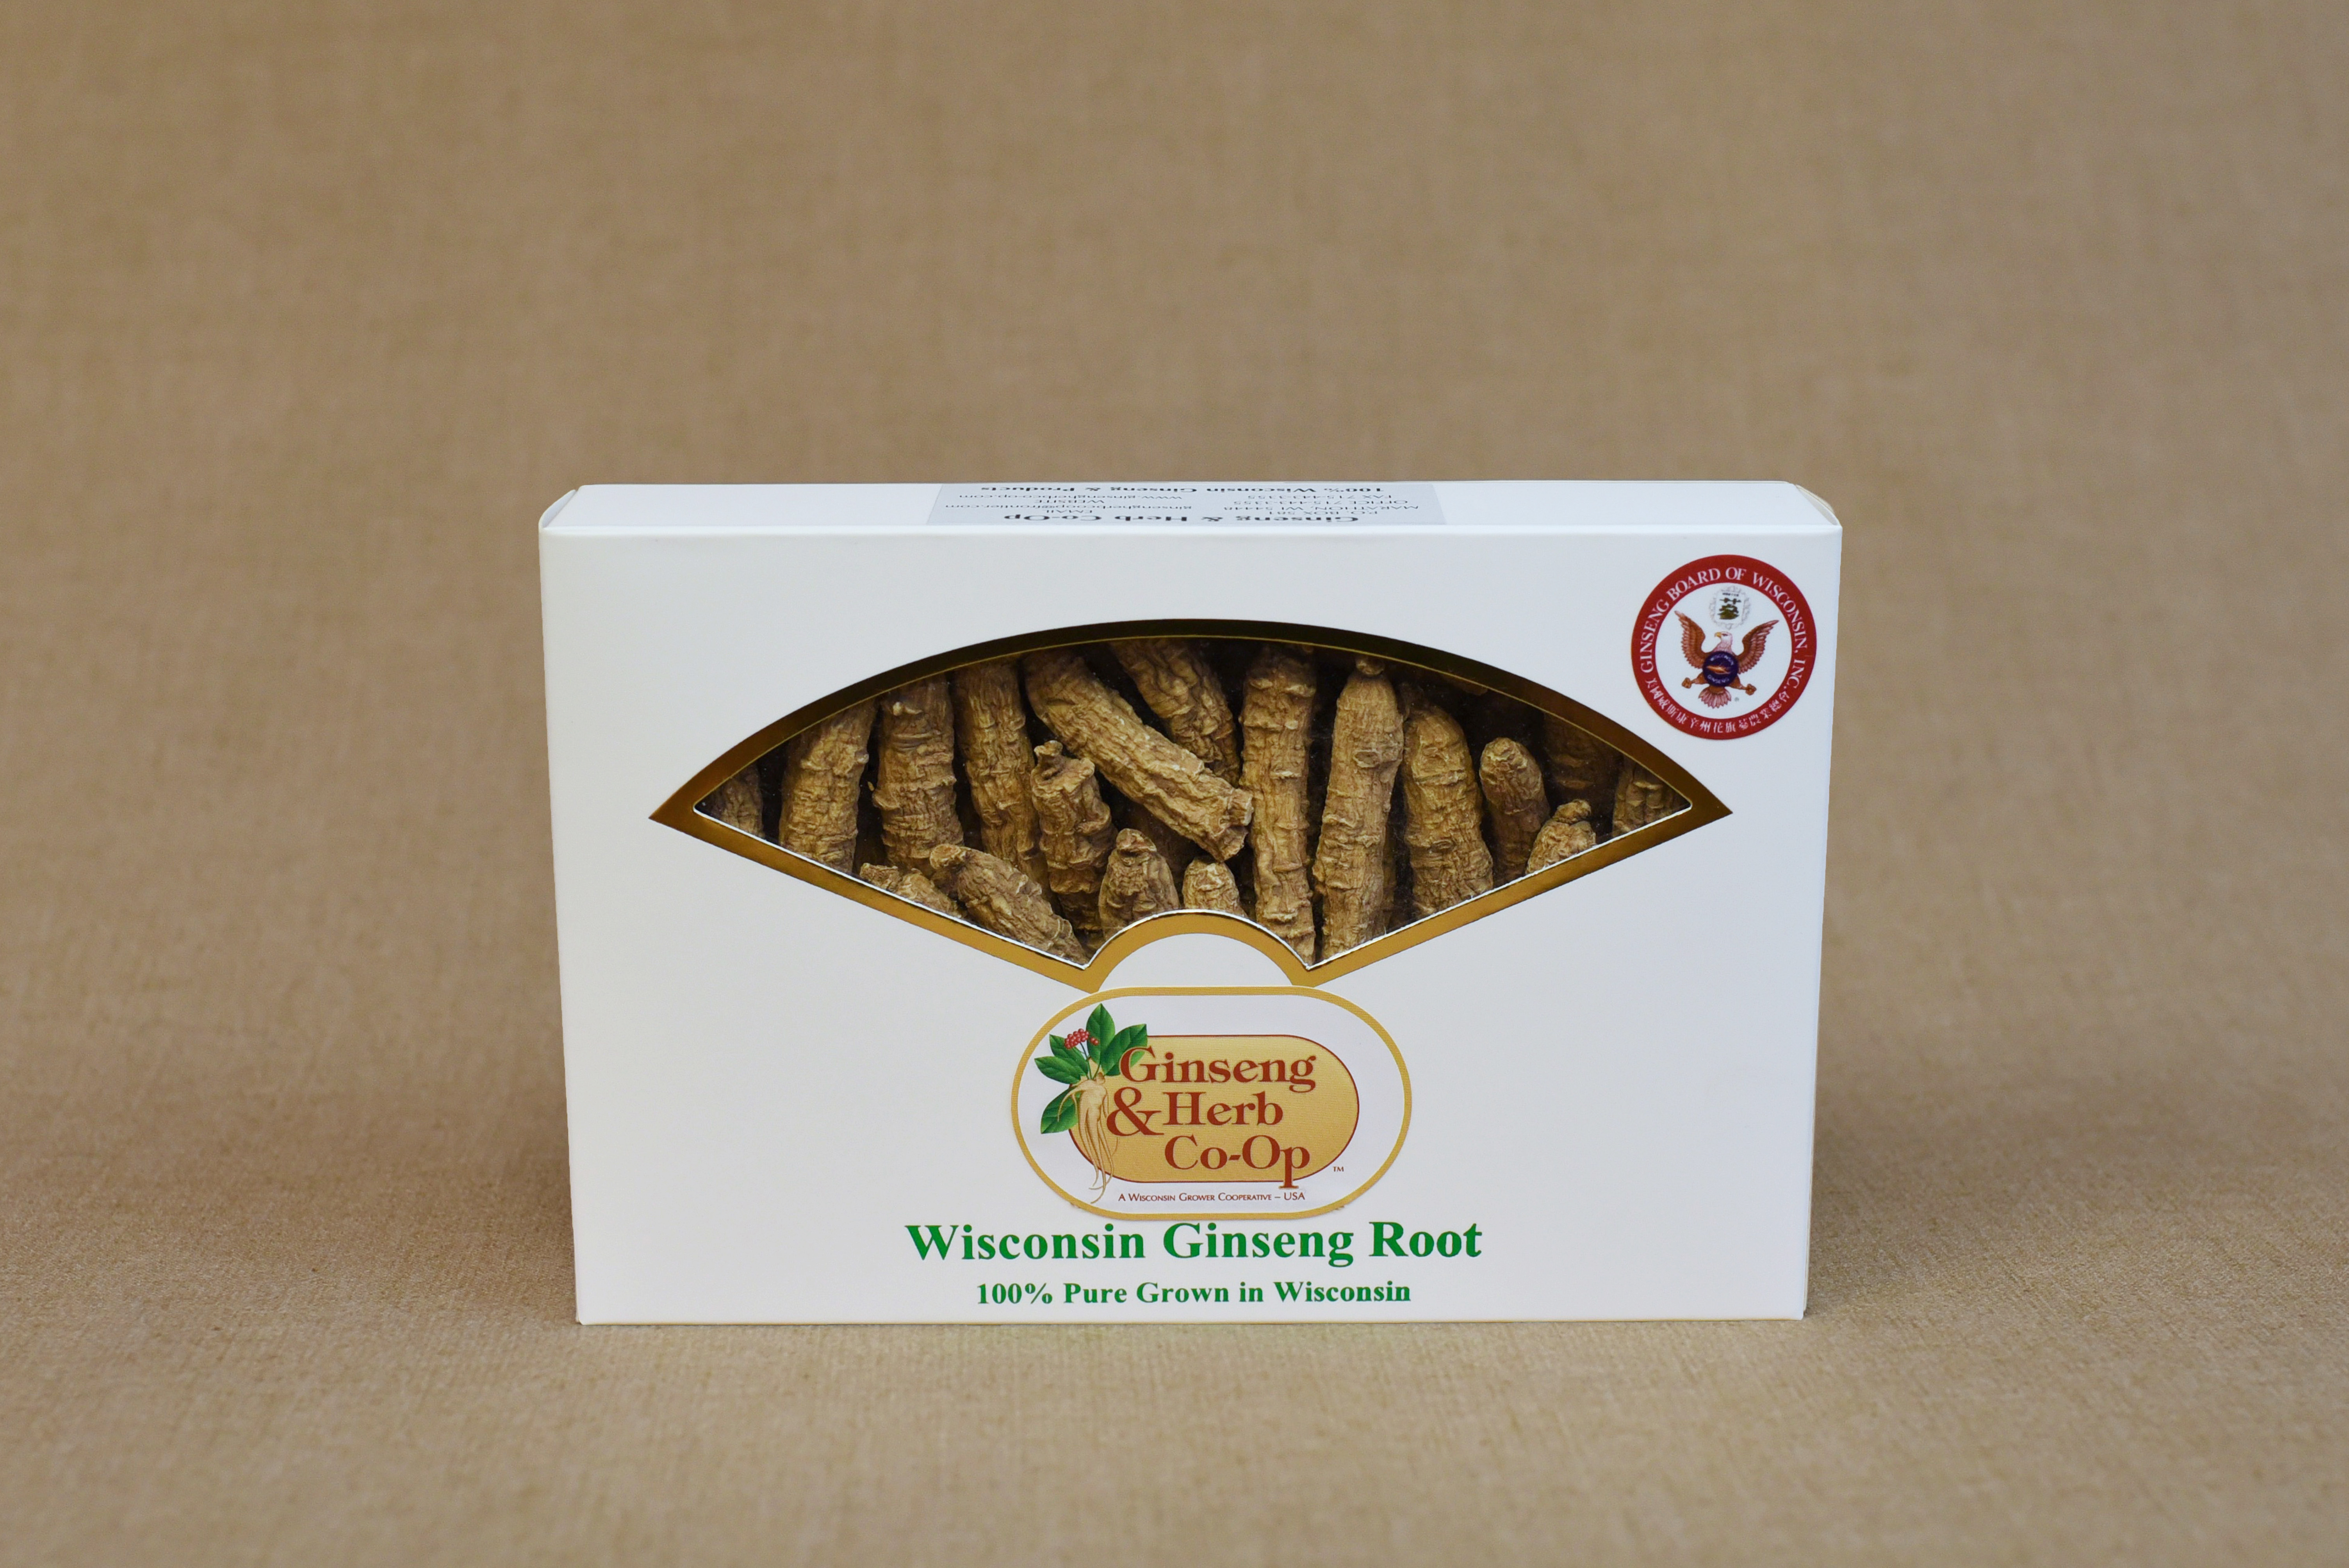 Buy Now! high quality Wisconsin Ginseng roots in Minneapolis, MN